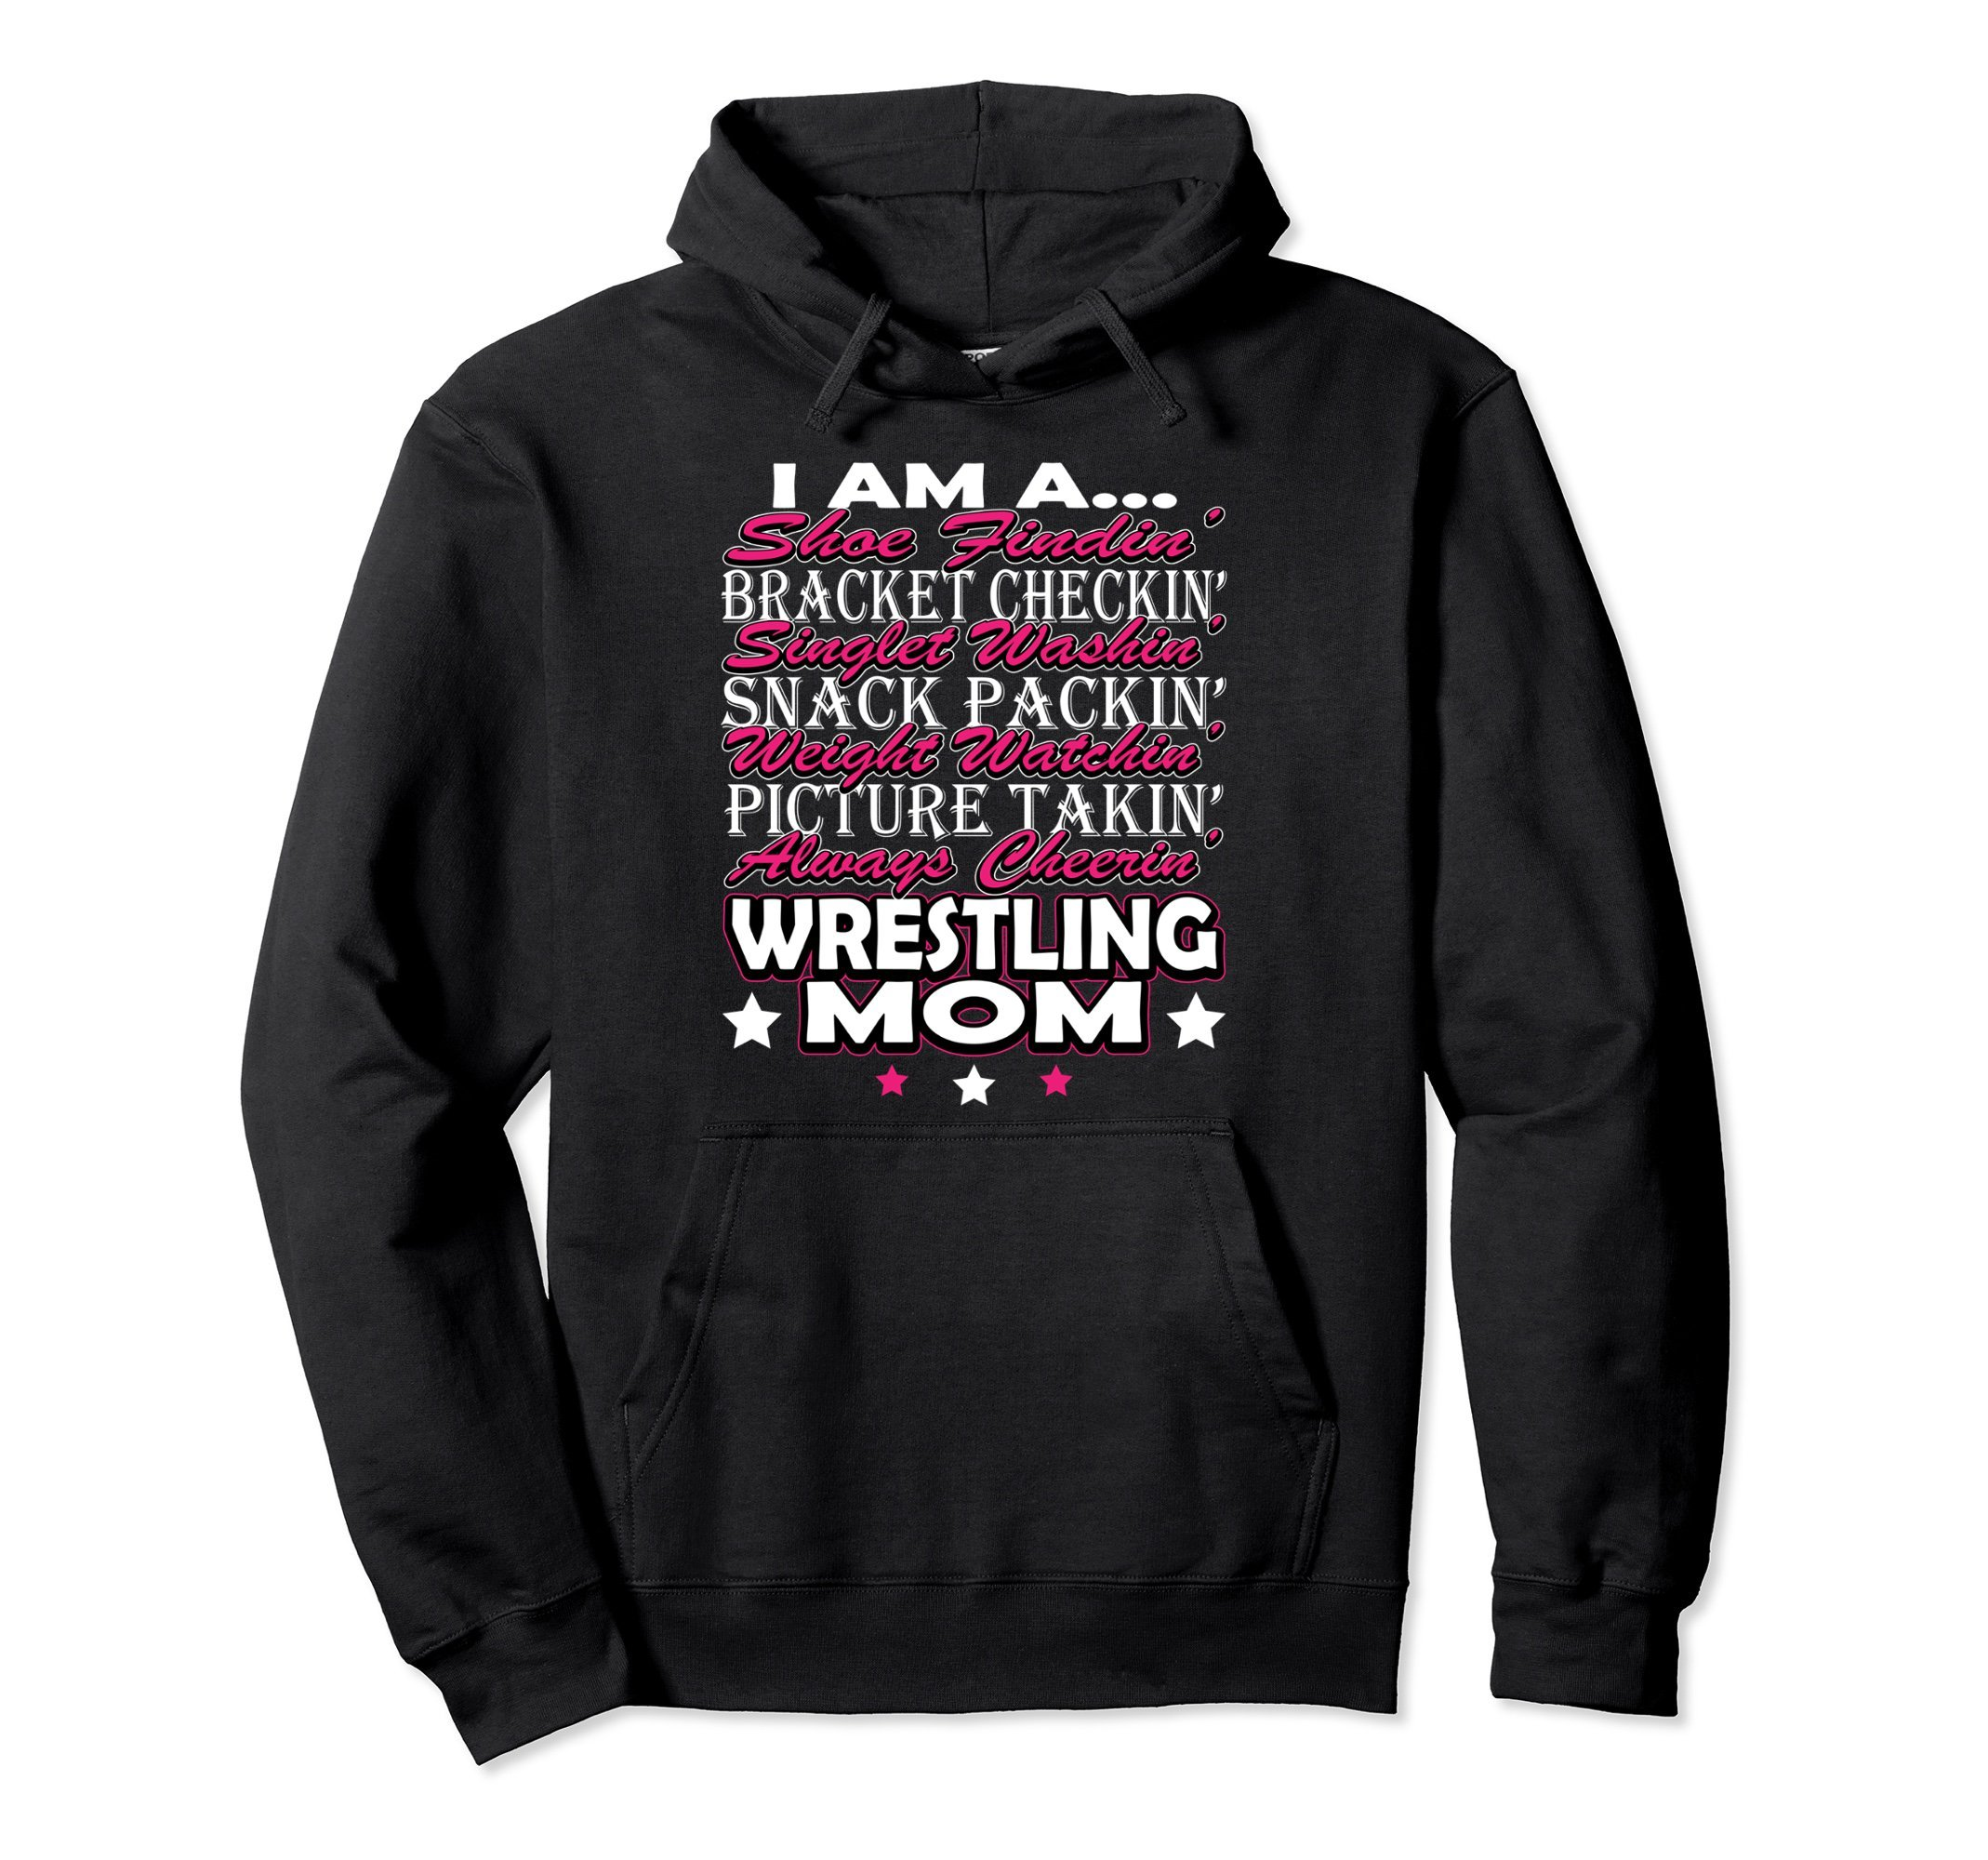 Unisex Wrestling Hoodie Sweatshirt - Wrestling Mom Hoodie Sweater XL: Black by Wrestling Sweatshirt by Crush Retro